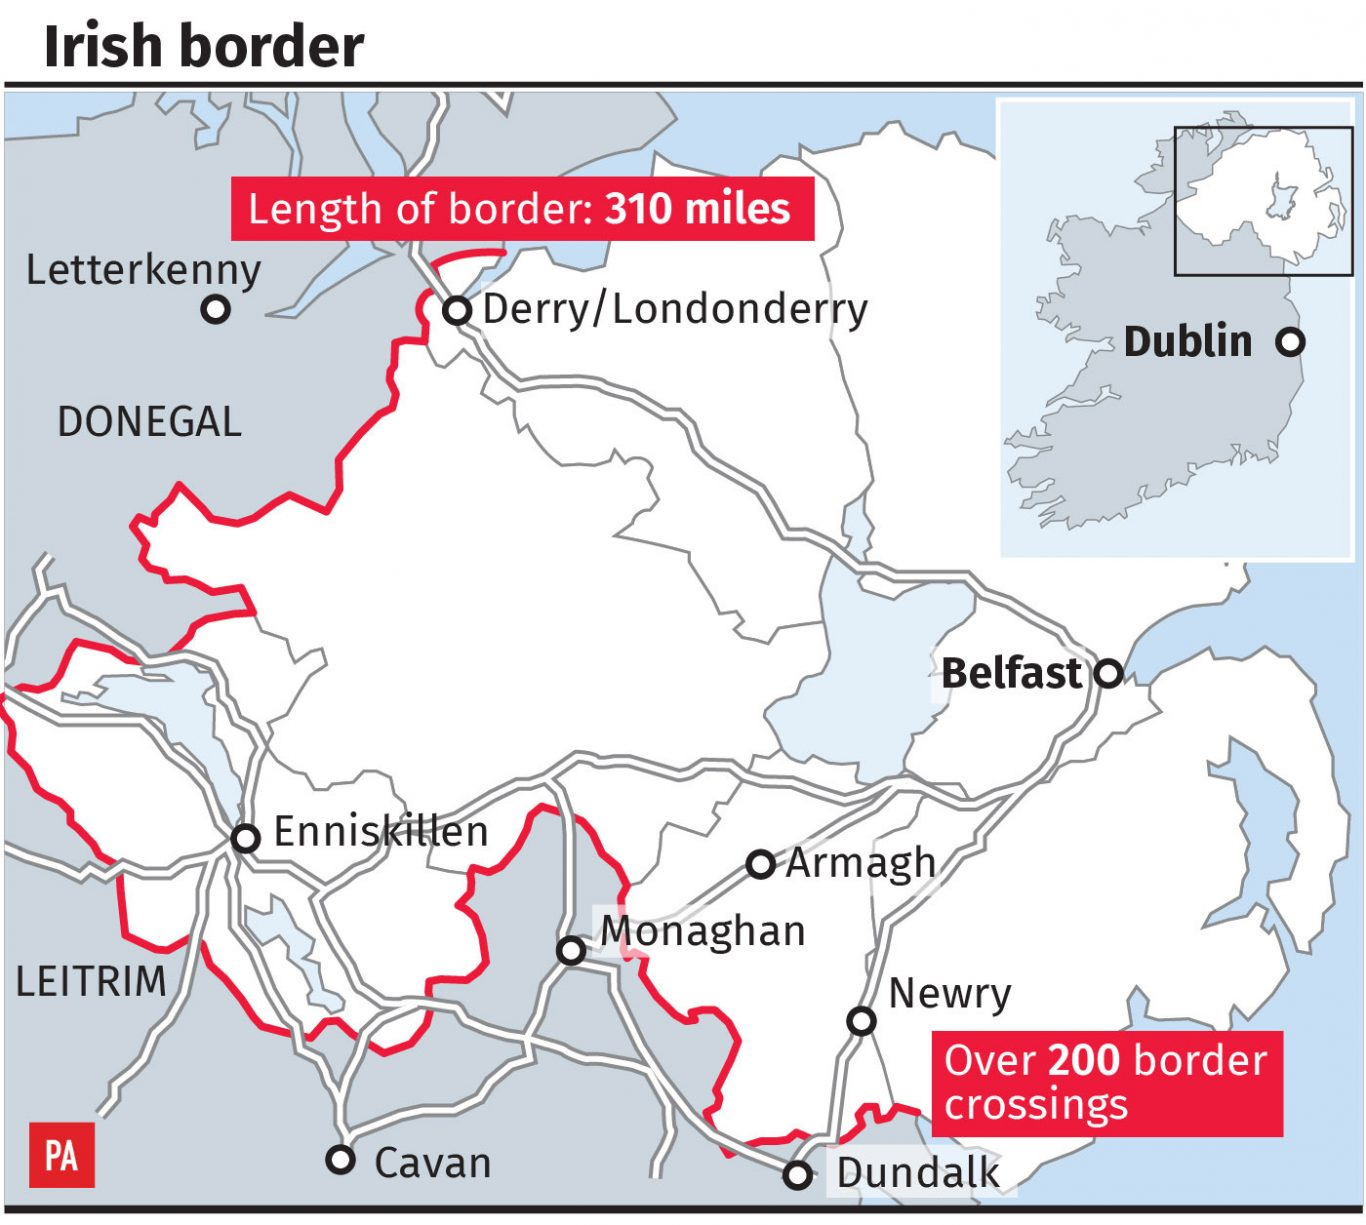 Map of the Irish border